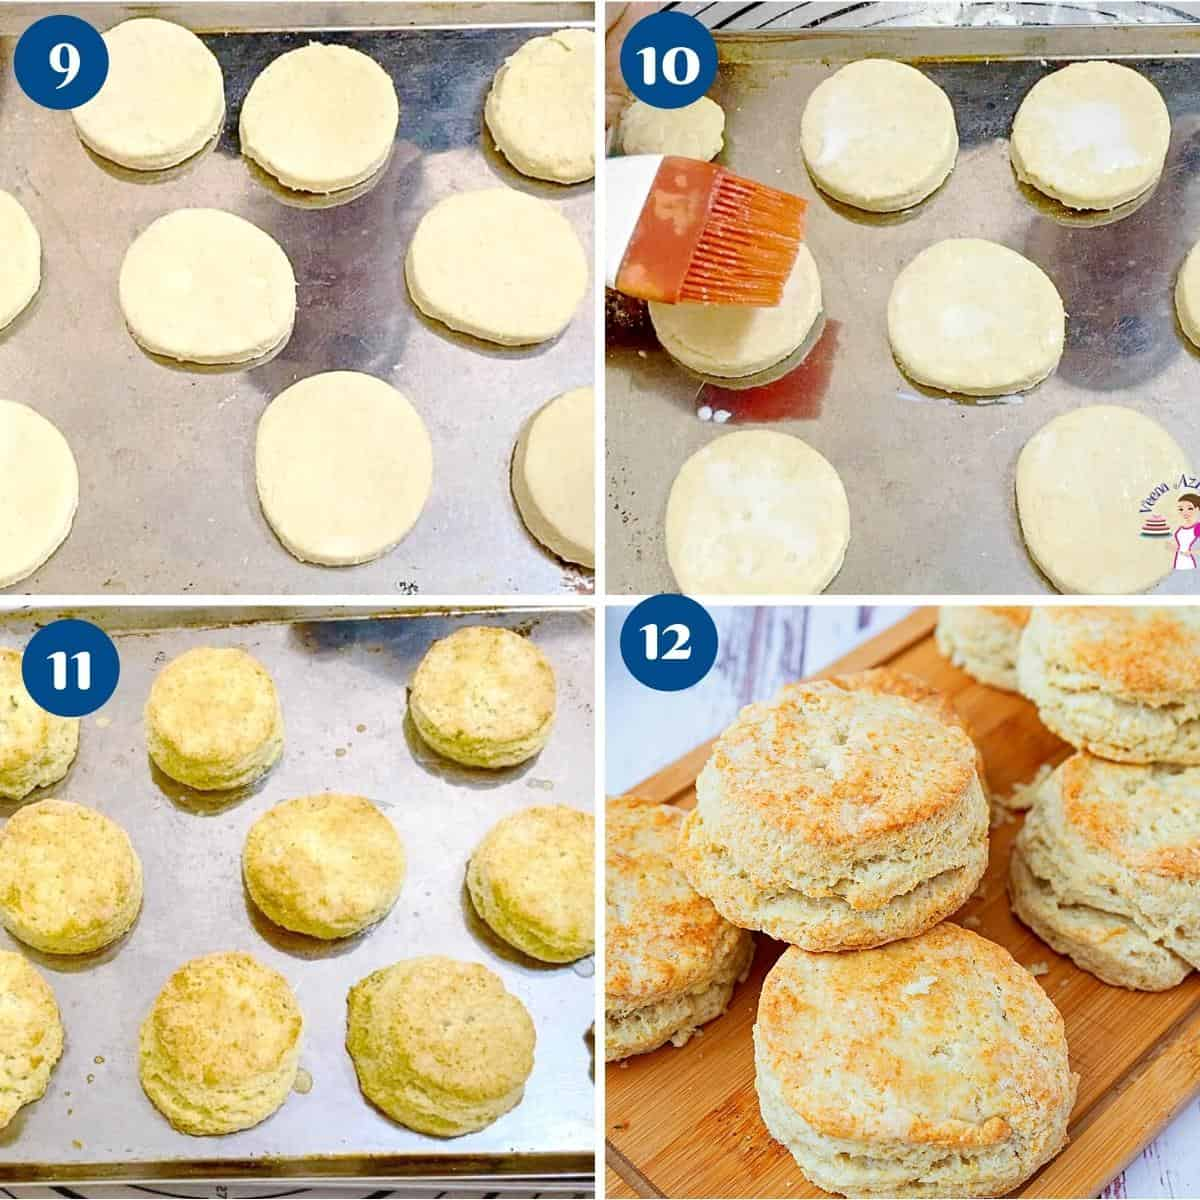 Progress pictures baking the biscuits.